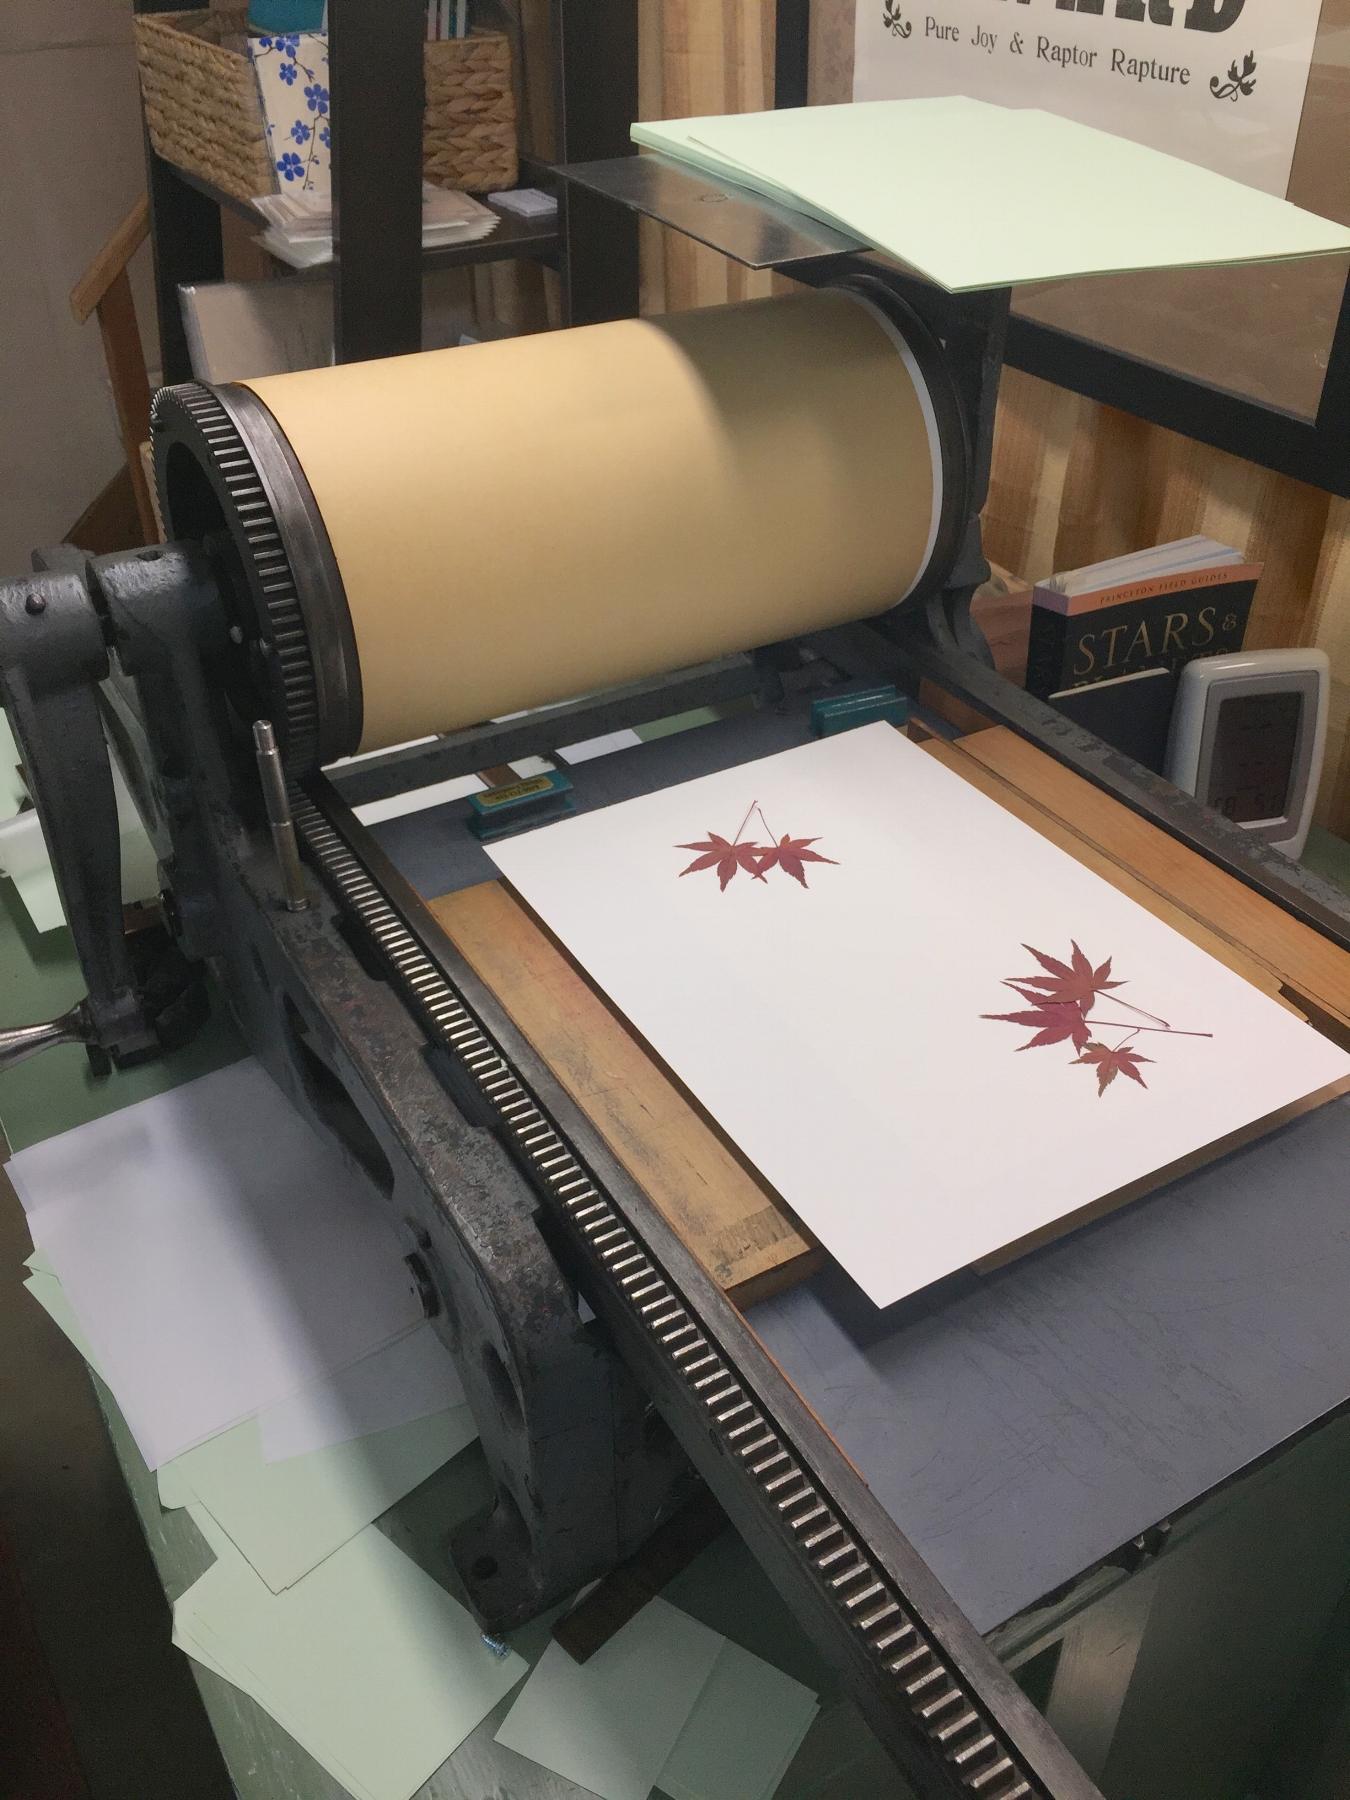 "This is my very first printing press, a Poco ""0"" made in Chicago around 1910 and designed to proof newspaper texts and images. It's a perfect little press for nature printing. When I had the leaves where I wanted on the book page, I placed an over sheet over the leaves and rolled everything under the cylinder."